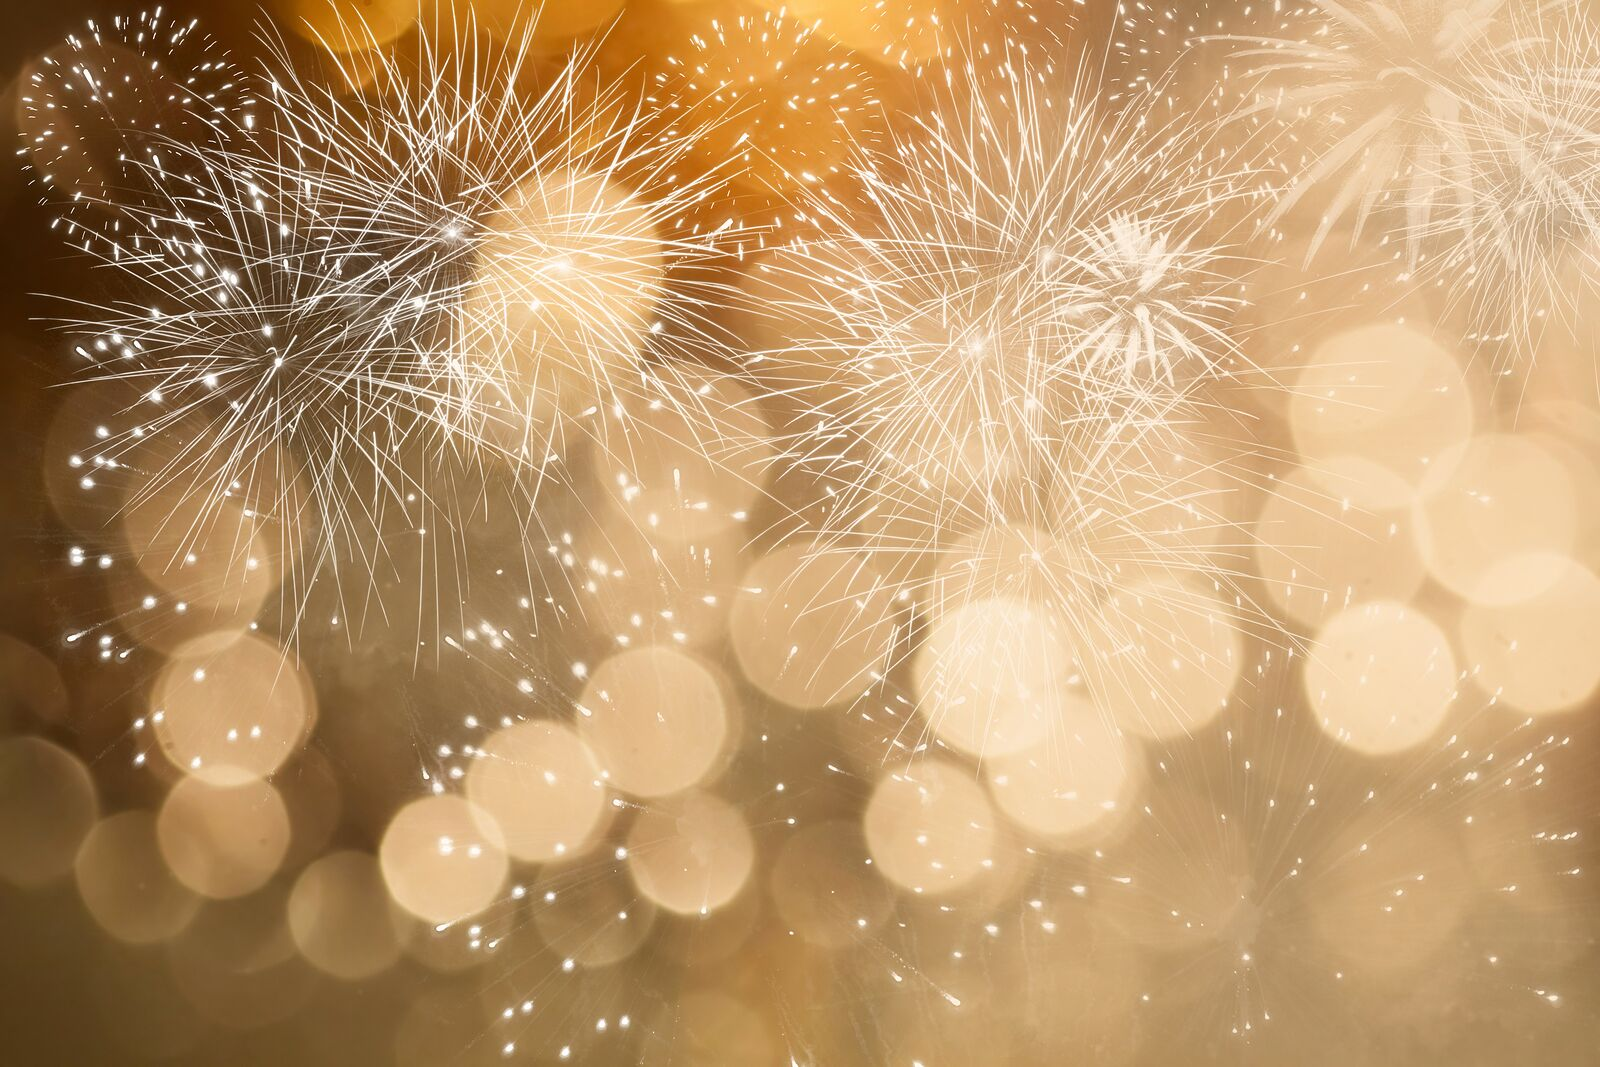 Caregiver in Irvine CA: Caregiver New Year's Resolutions